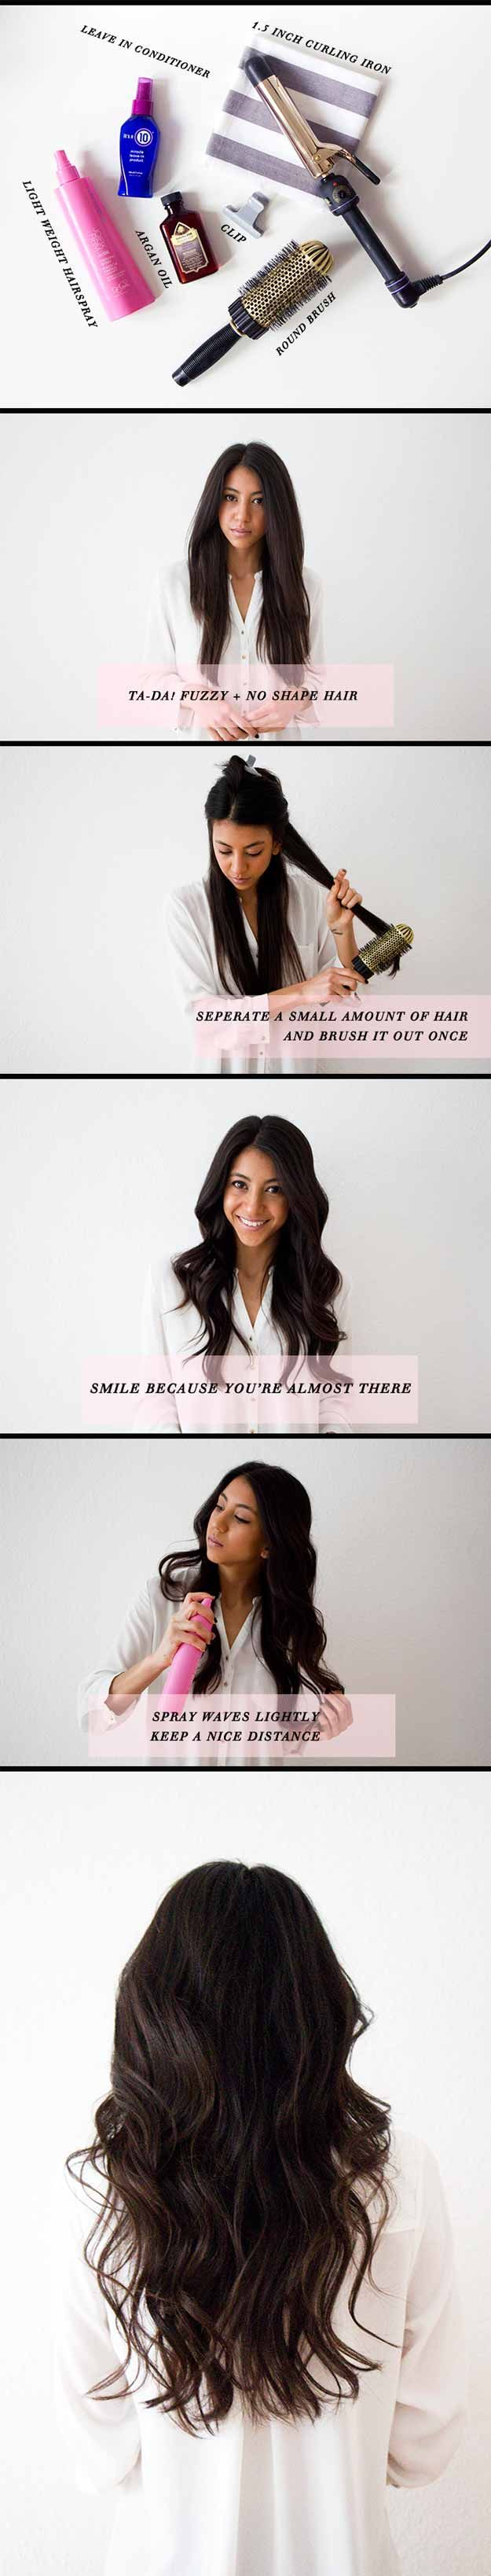 Long Wavy Hairstyles - Hair How to: Loose Waves - Beautiful Long Layered Haircuts And Long Wavy Haircuts With Layers And With Bangs. Half Up Bob Tutorial For Wedding, Prom, Or For Homecoming. No Heat Wavy Hairstyles That Are Gorgeous And Natural. Black, Blonde, And Brunette Long Wavy Hairstyles For Round Face, With Braid, With Ponytail, and With Medium Length Hair. DIY Ideas For That Boho Look, Or Updos For Medium Length Hair. Add More Volume For Thin Hair With Waves And Curls…